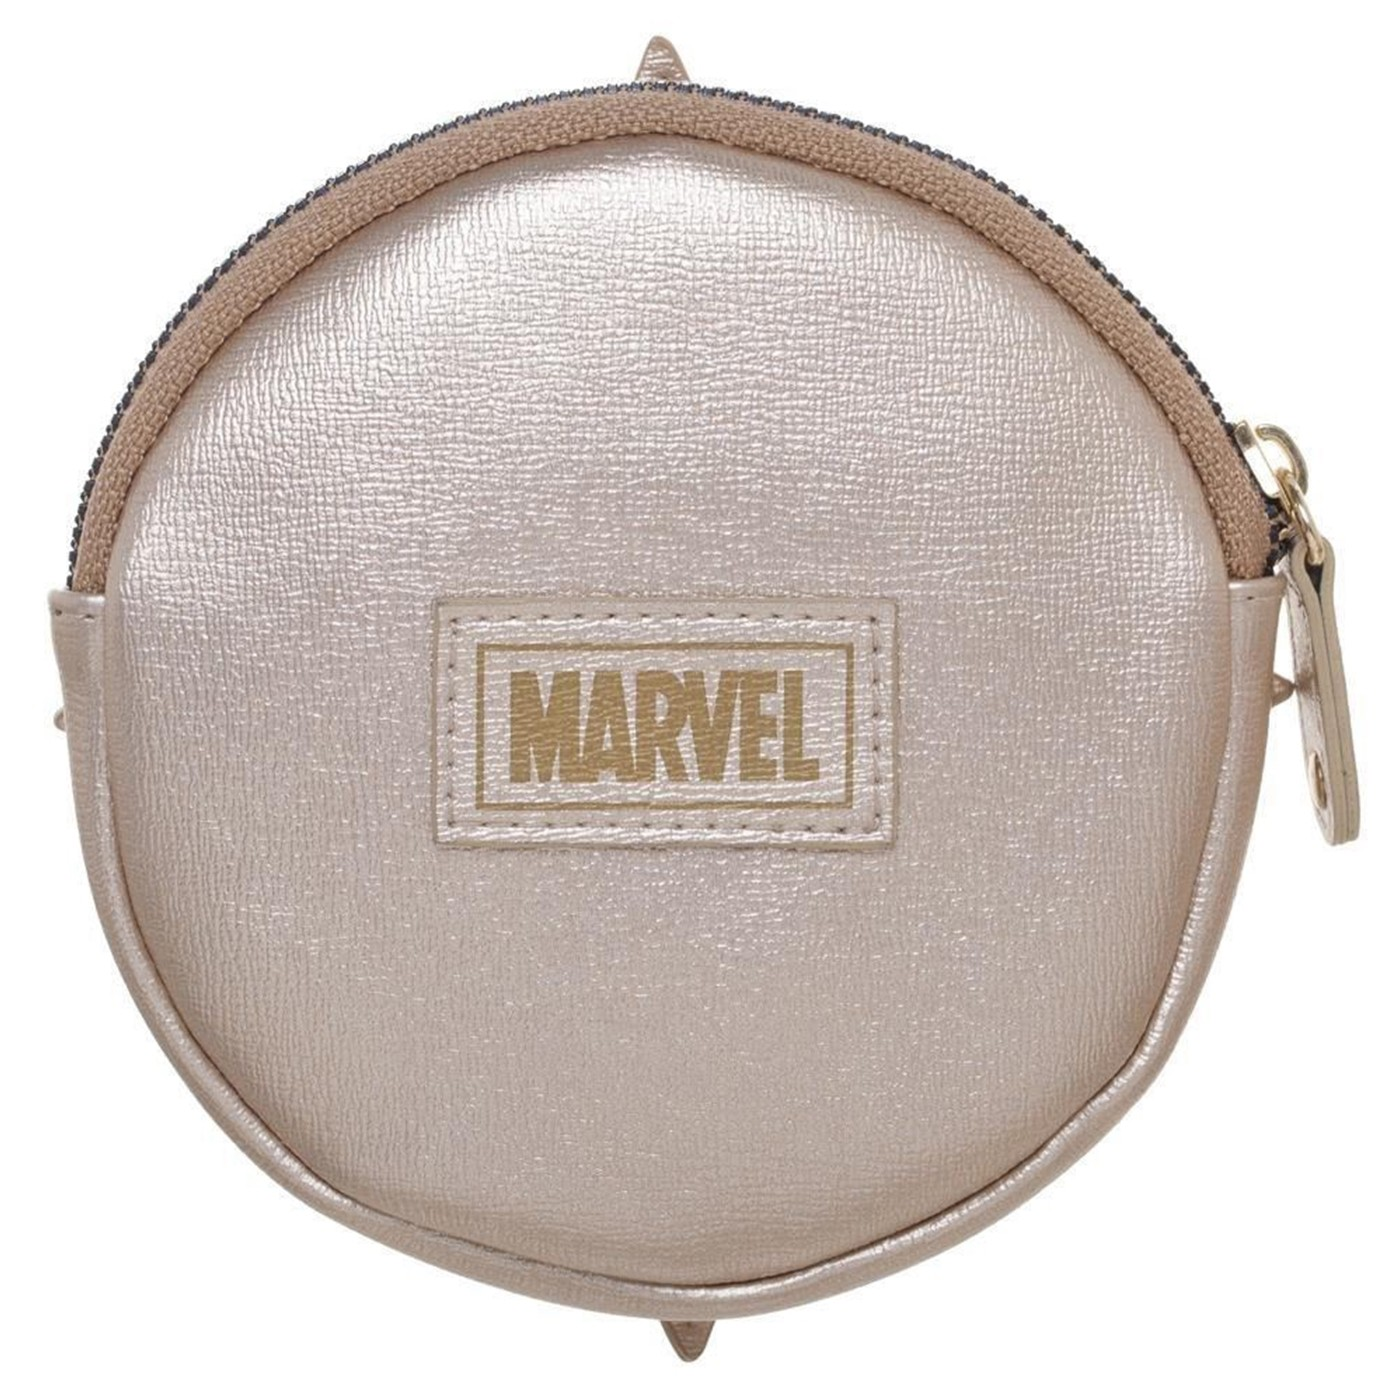 Captain Marvel Coin Purse